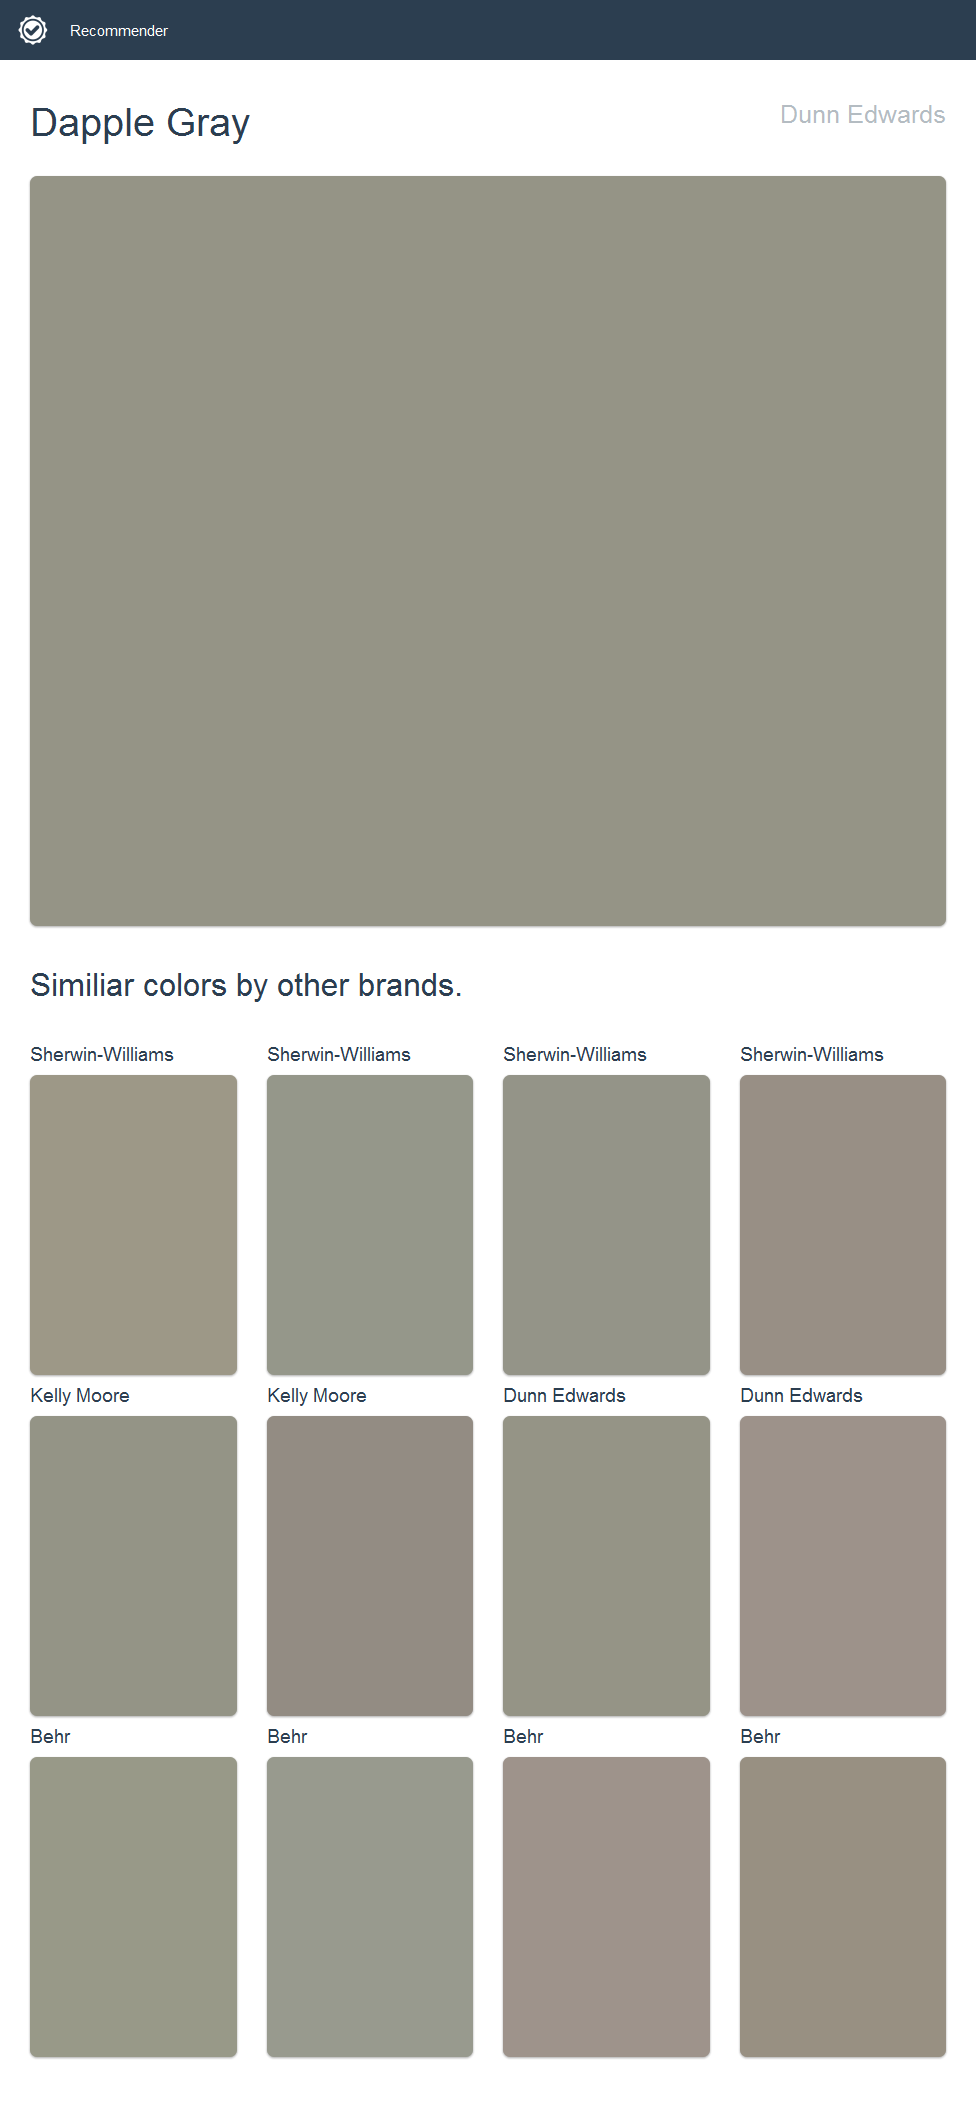 Dapple Gray, Dunn Edwards. Click the image to see similiar colors by other brands.